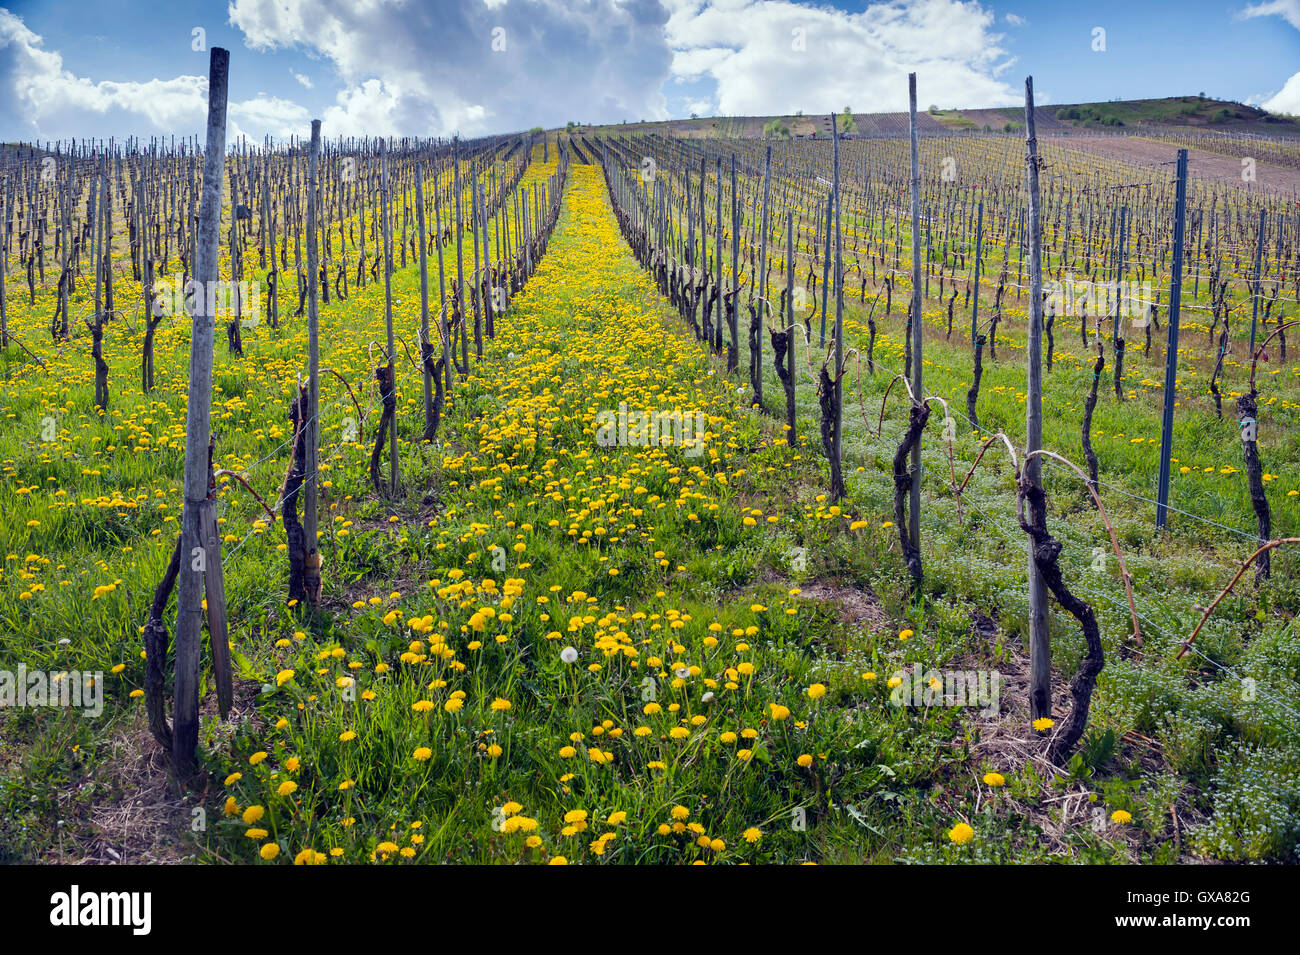 Vineyard in the Moselle Valley, Germany - Stock Image